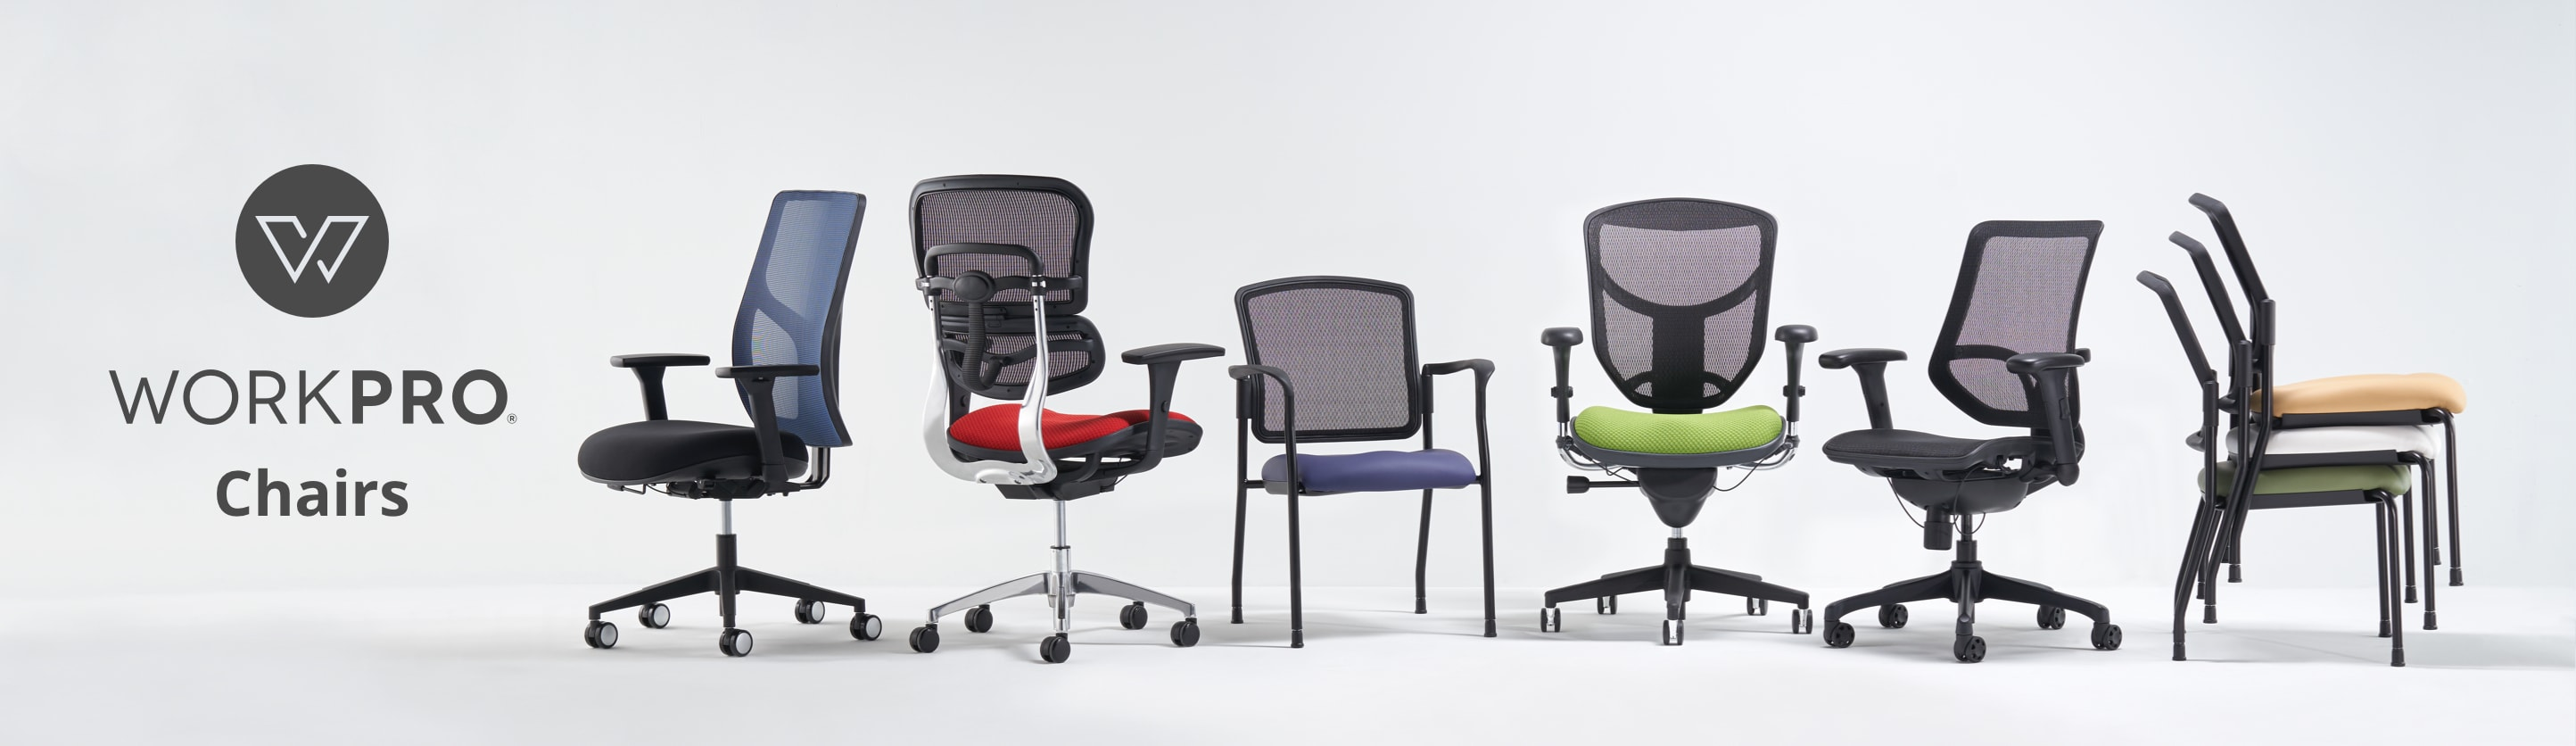 workpro chairs